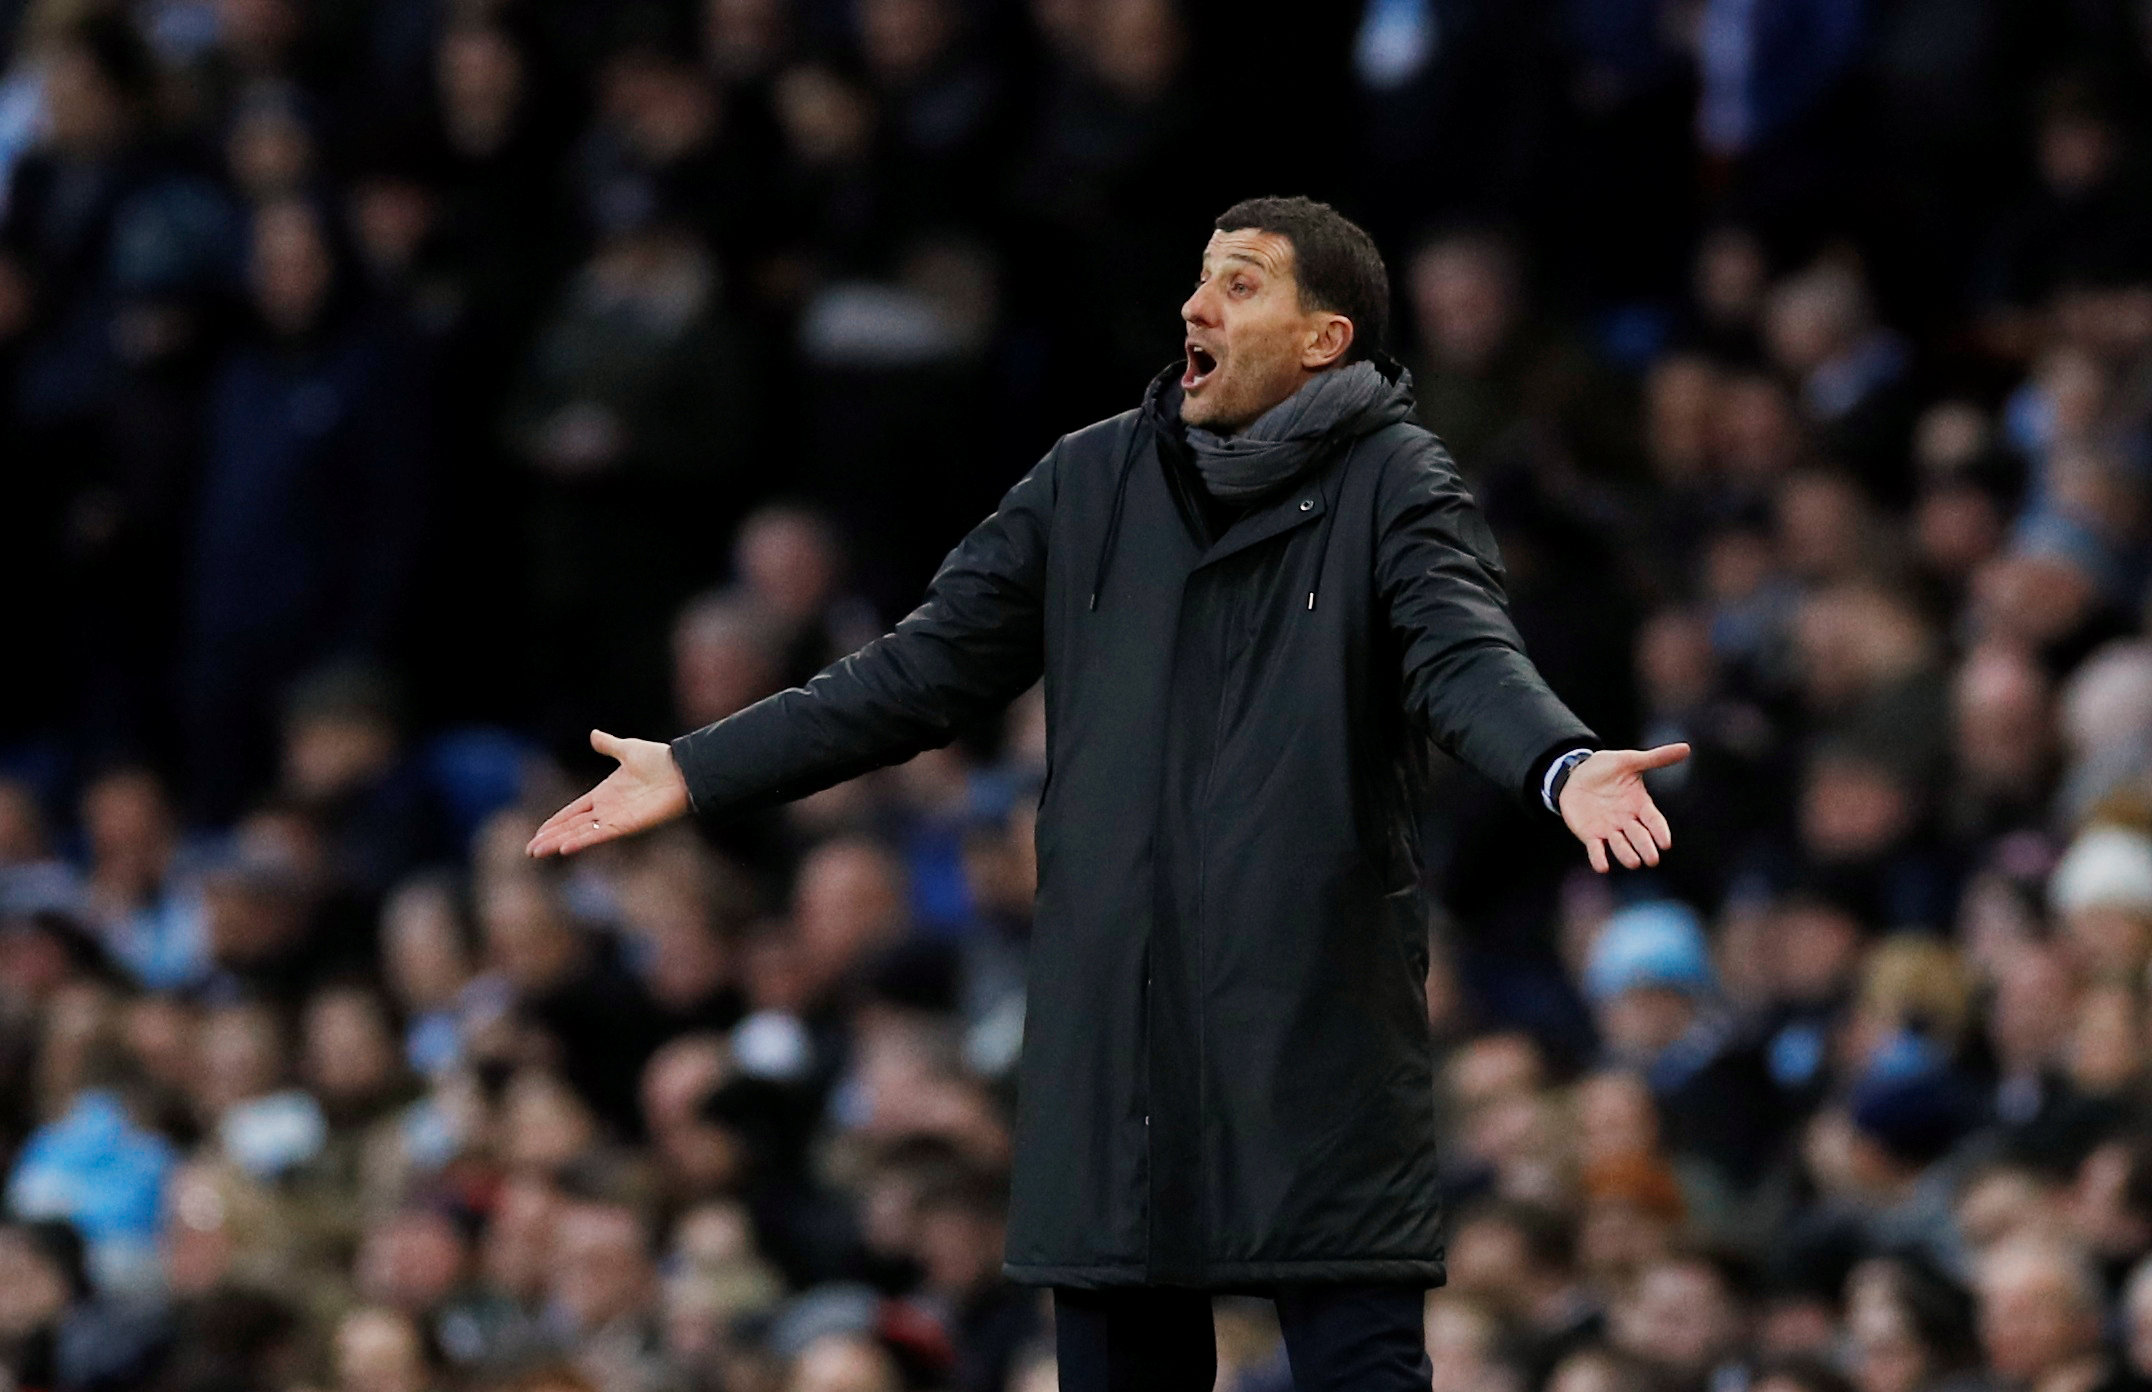 Gracia: 'Everybody could see offside'